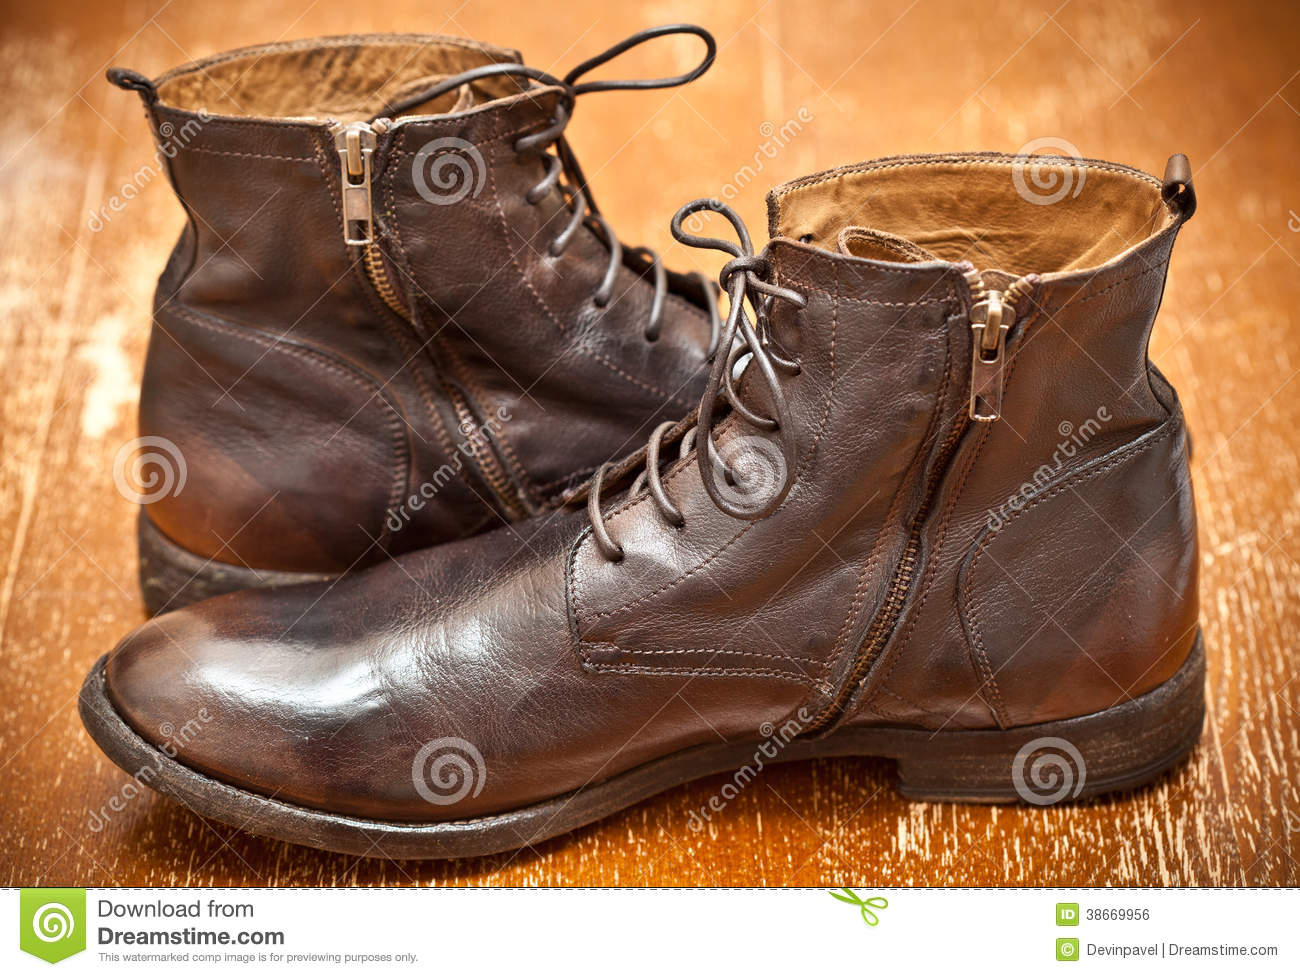 Renew Leather Shoes